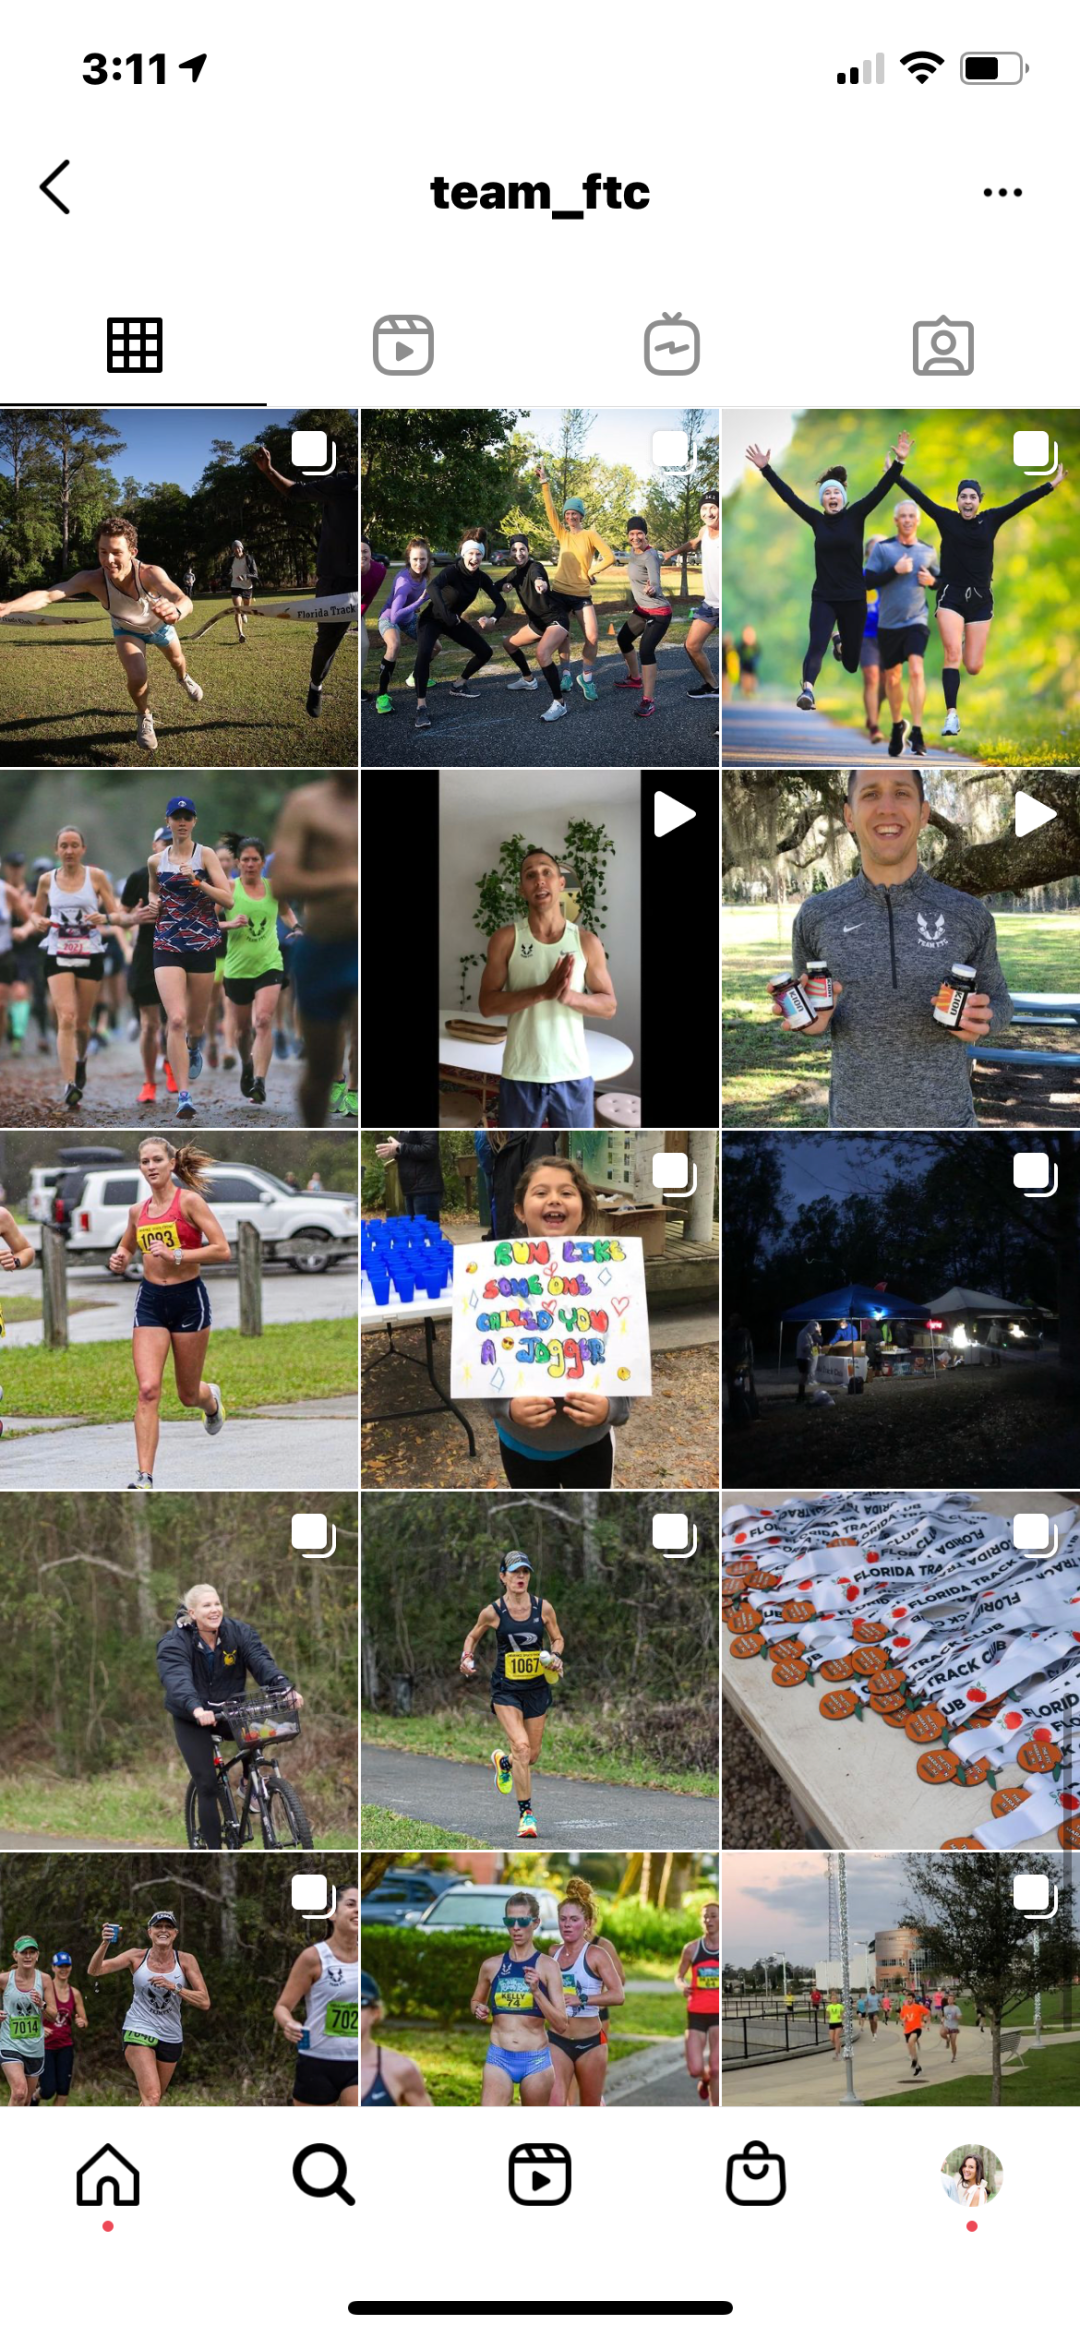 @team_ftc | Favorite Running Instagrammers to Follow